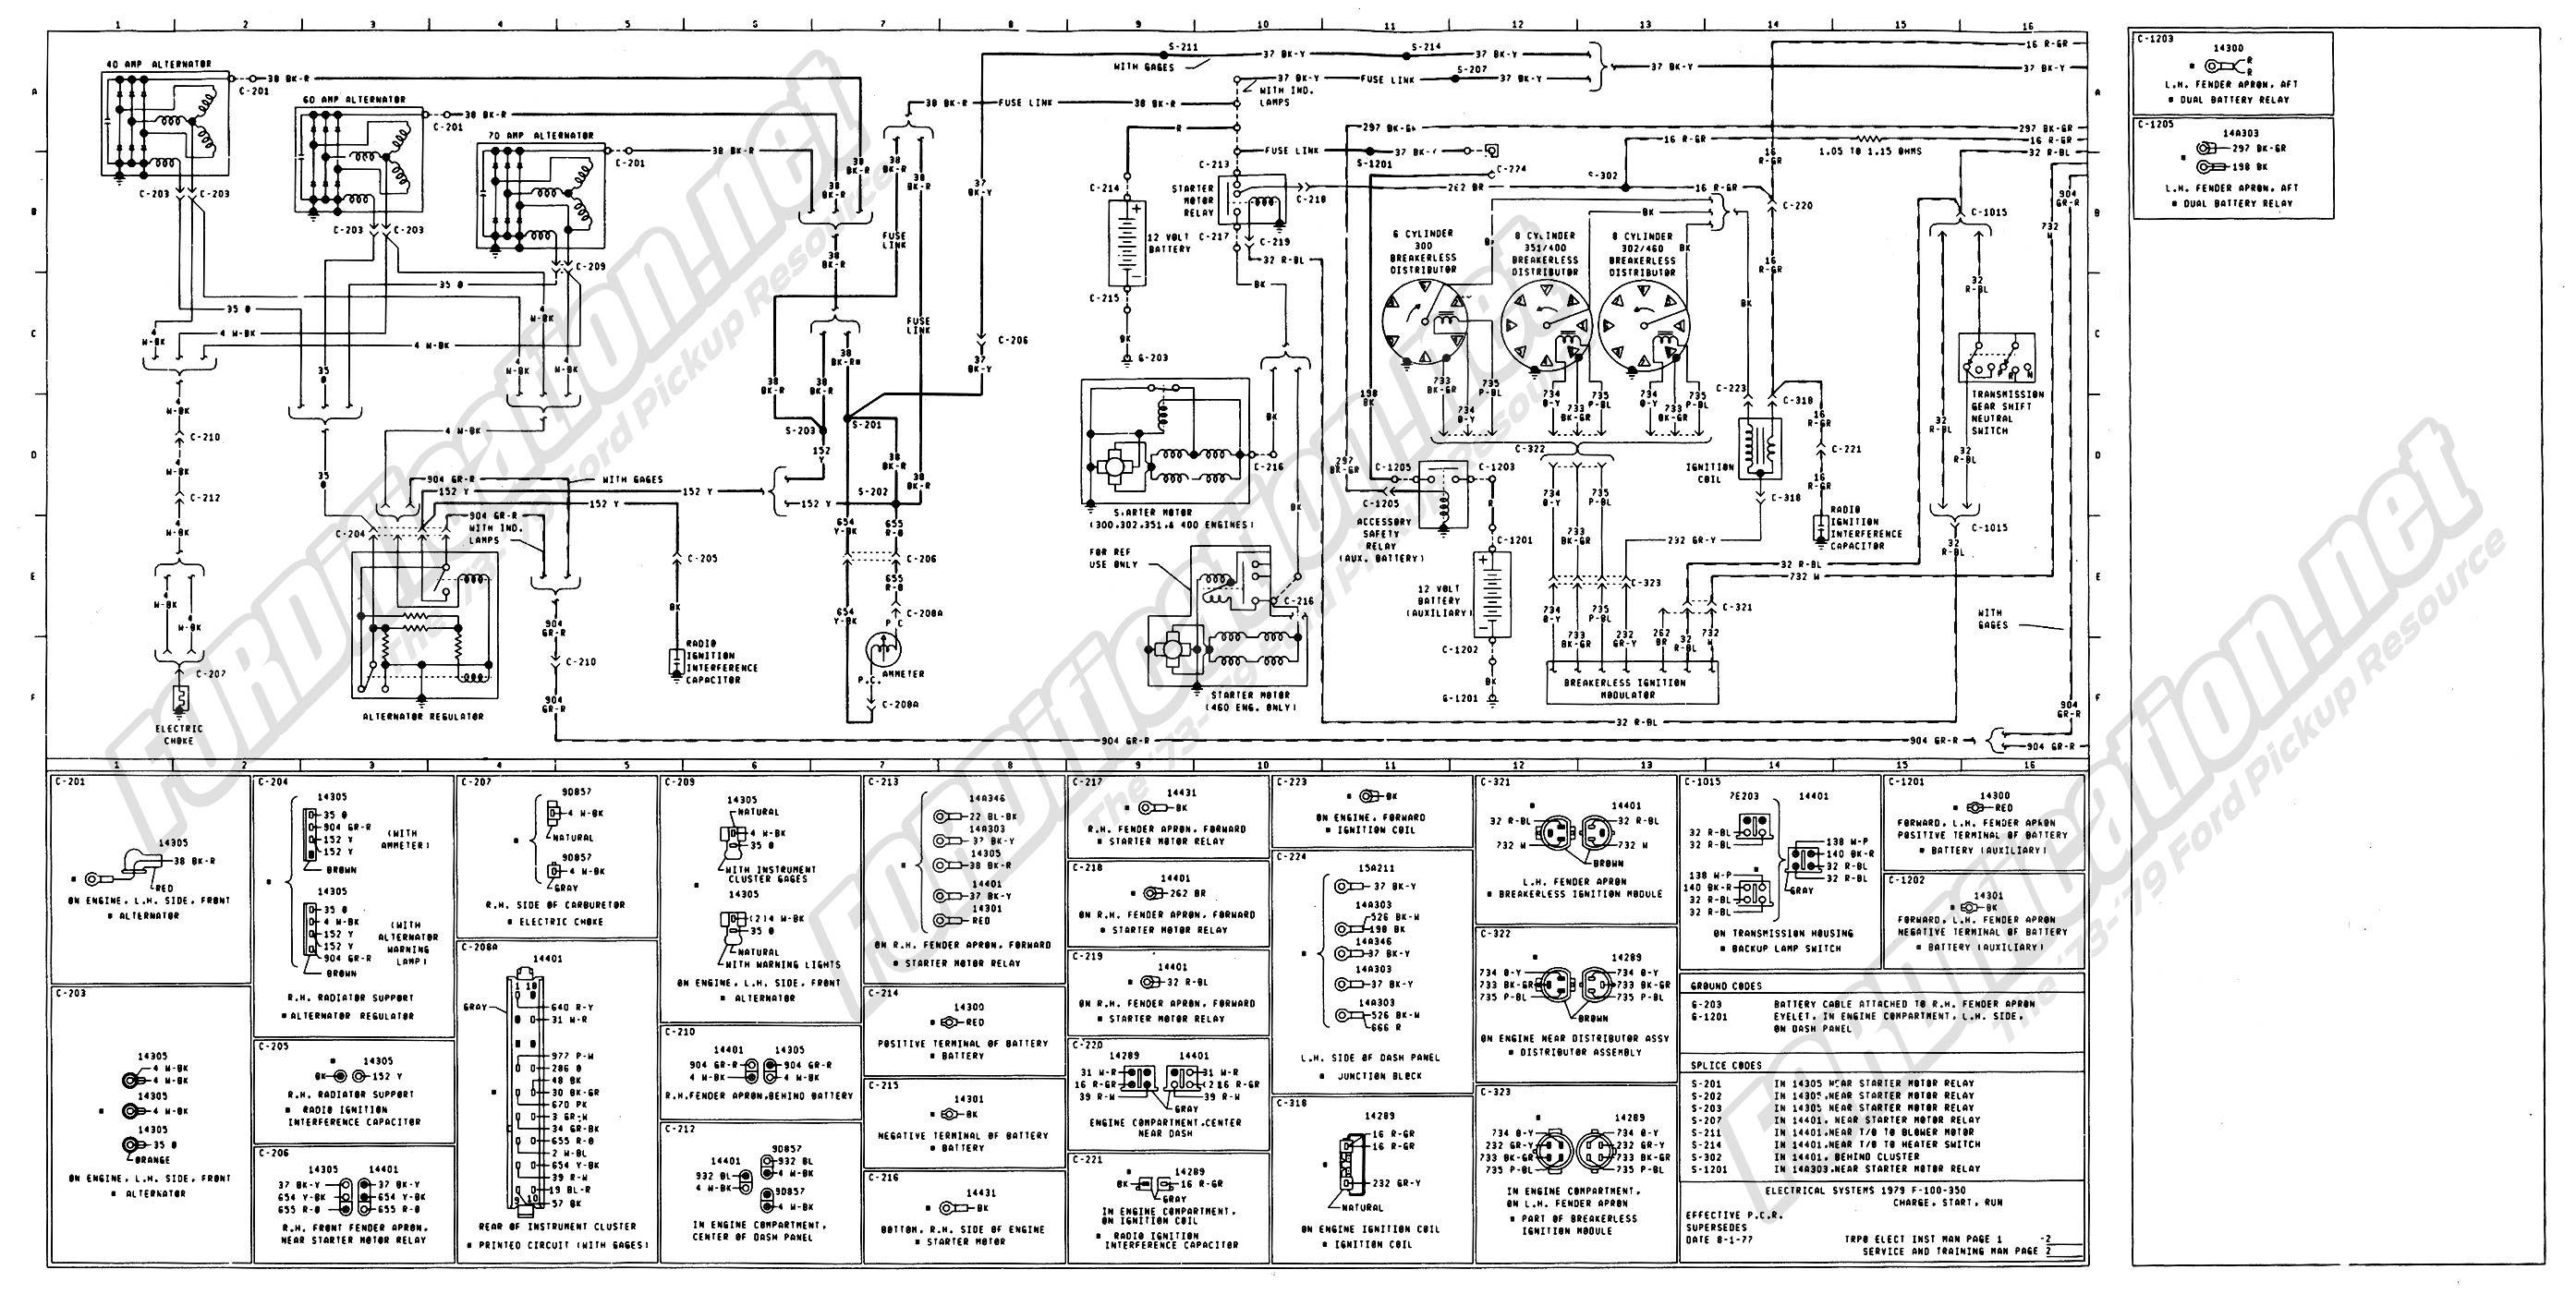 1980 Ford F 150 Charging System Wiring Diagram Schematics 1972 Chevy Truck 1973 1979 Diagrams Fordification Net Excursion